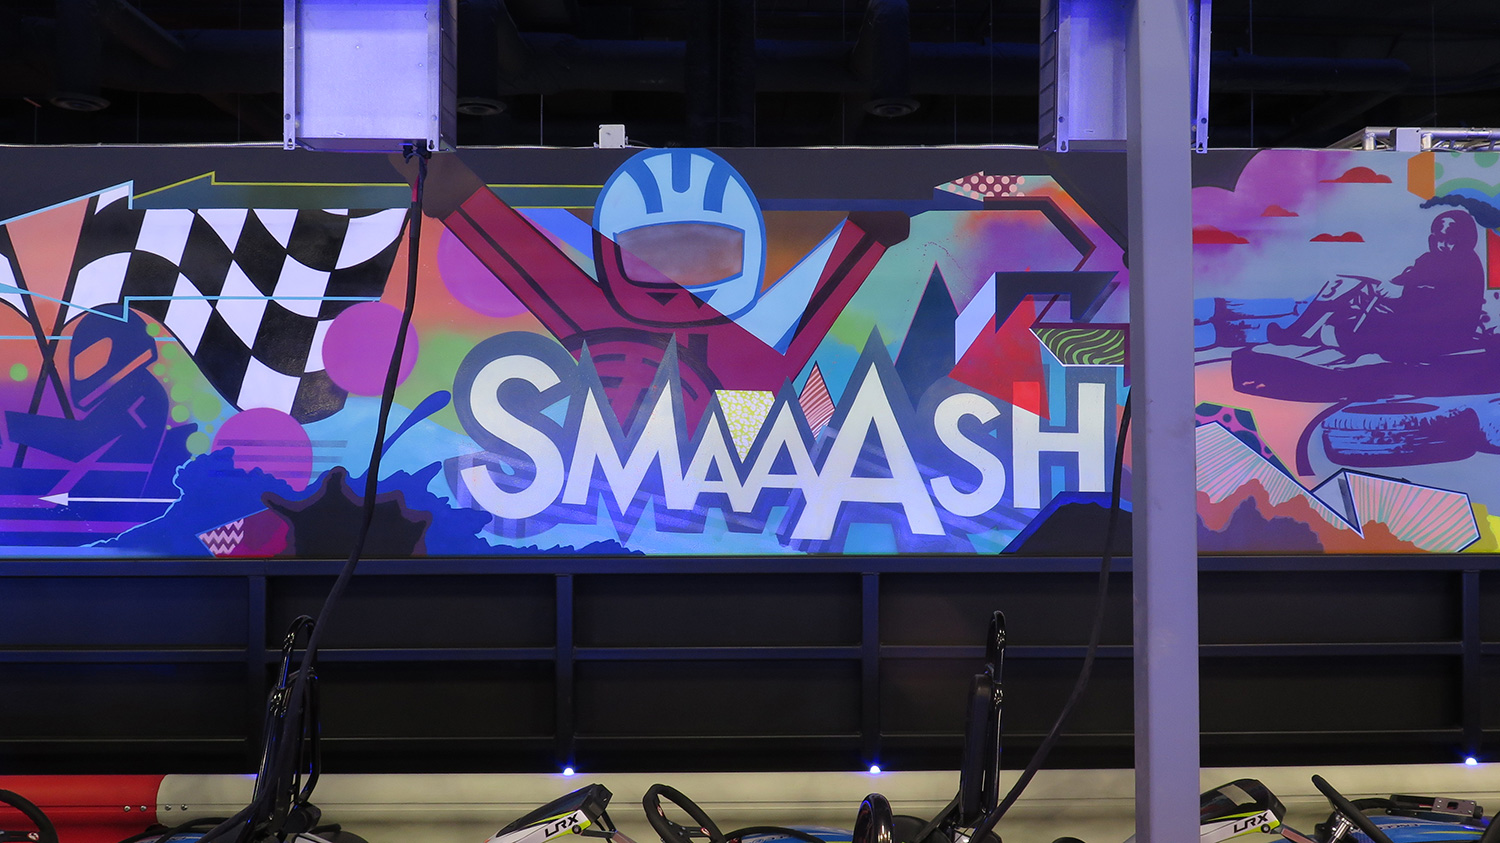 Minnesota Street Artist for Smaaash Venue